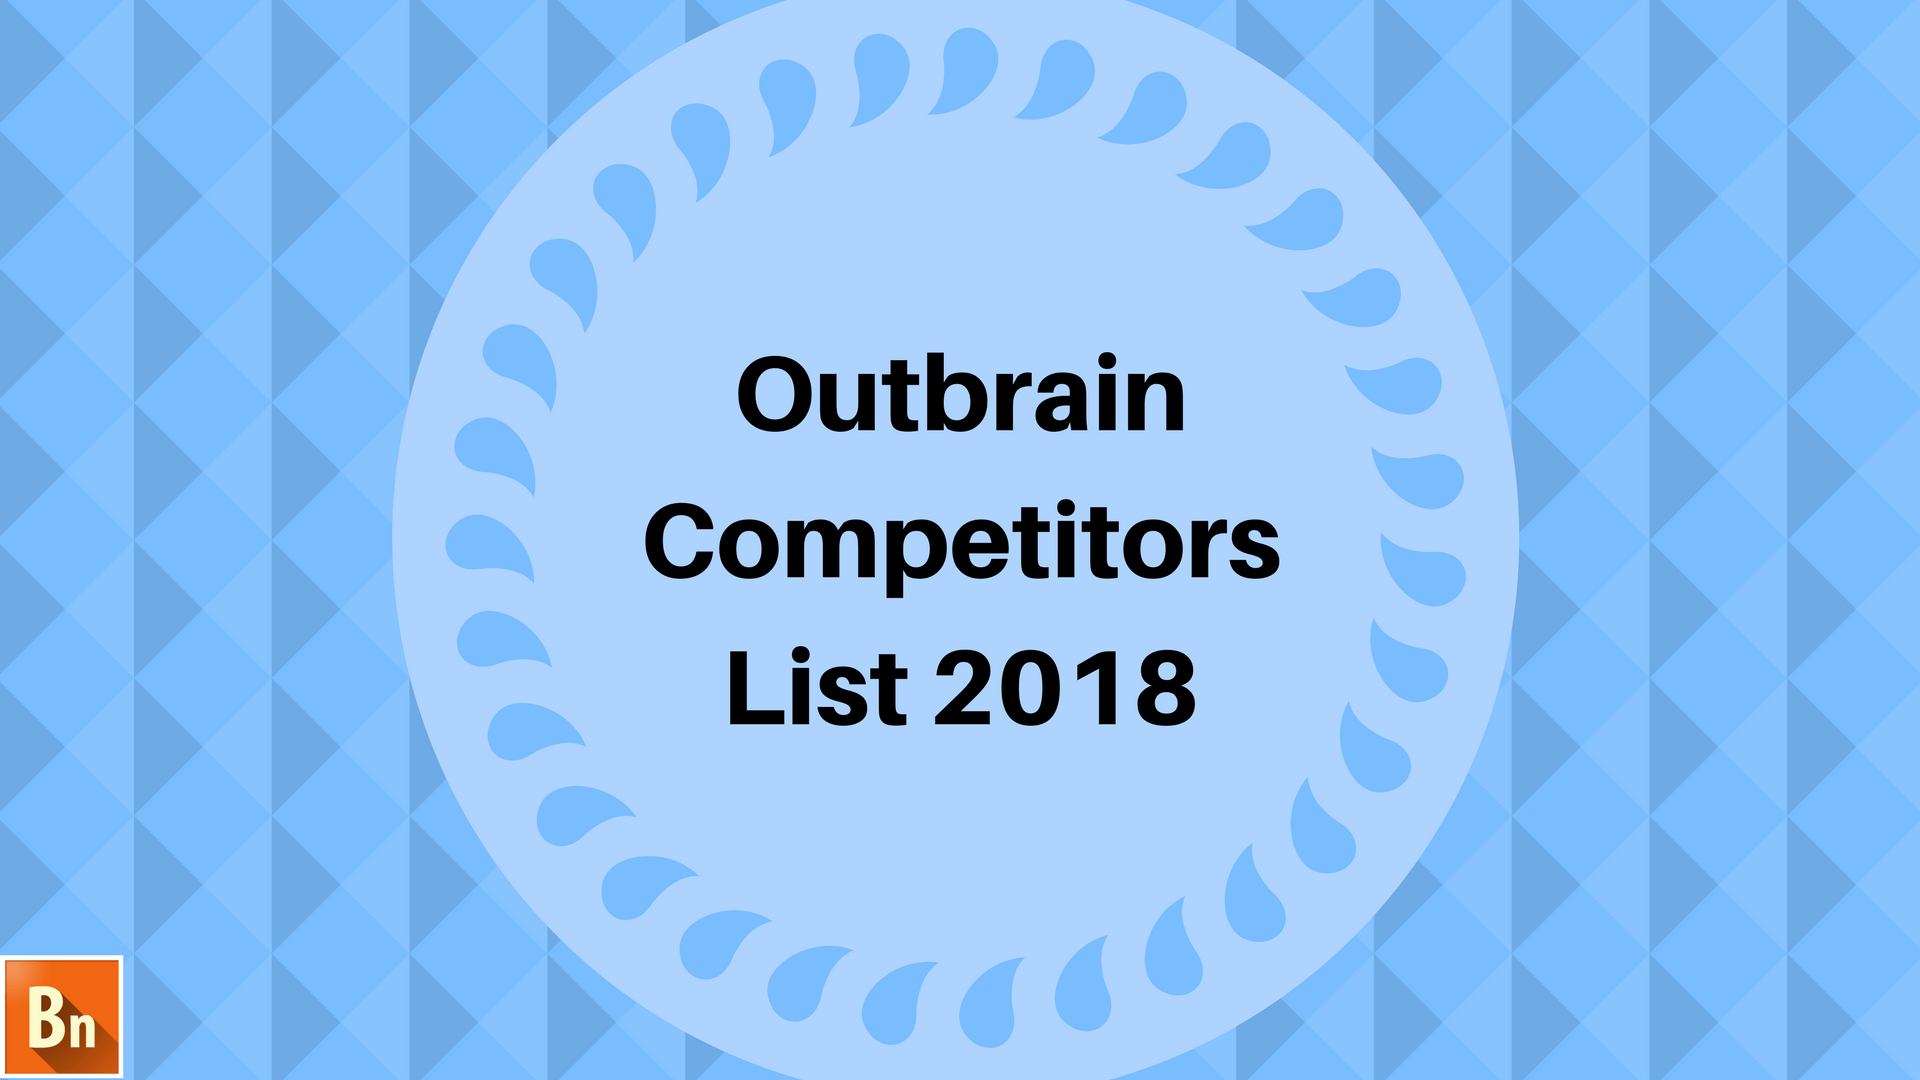 10+ Outbrain Competitors List of 2018